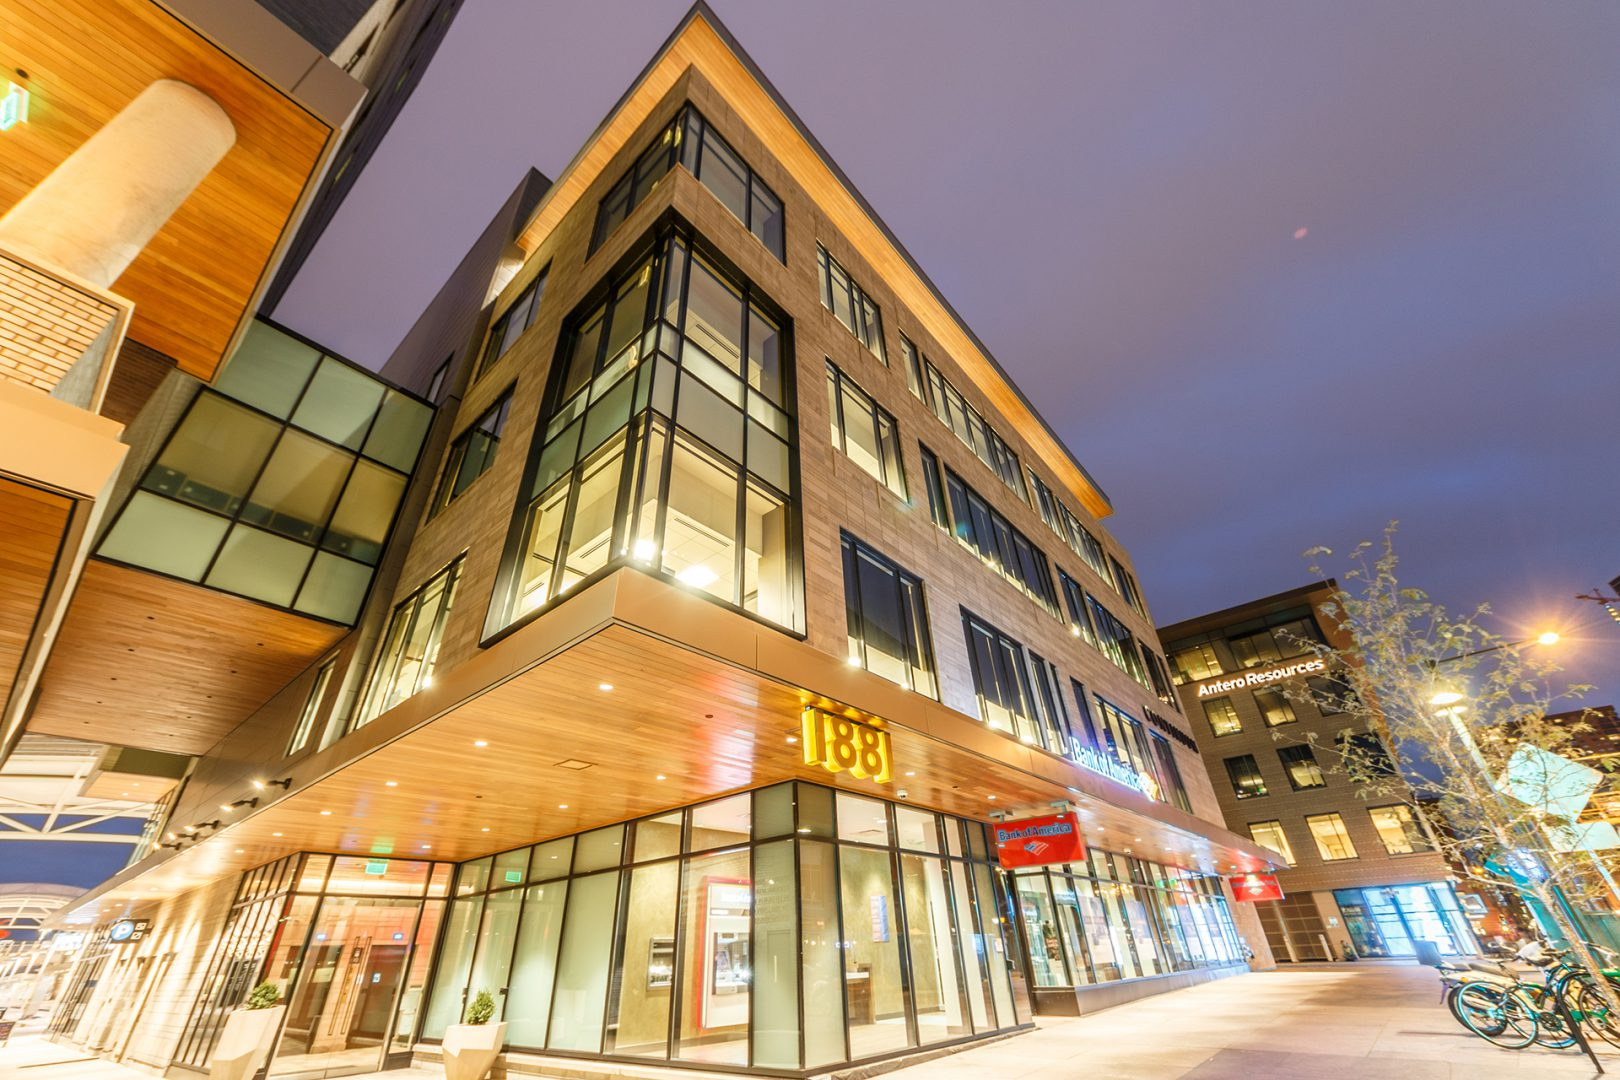 <p>This $120 million 4-star boutique hotel, office and retail complex makes the key pedestrian connection between the 16th Street Mall and the commuter train platforms.</p>